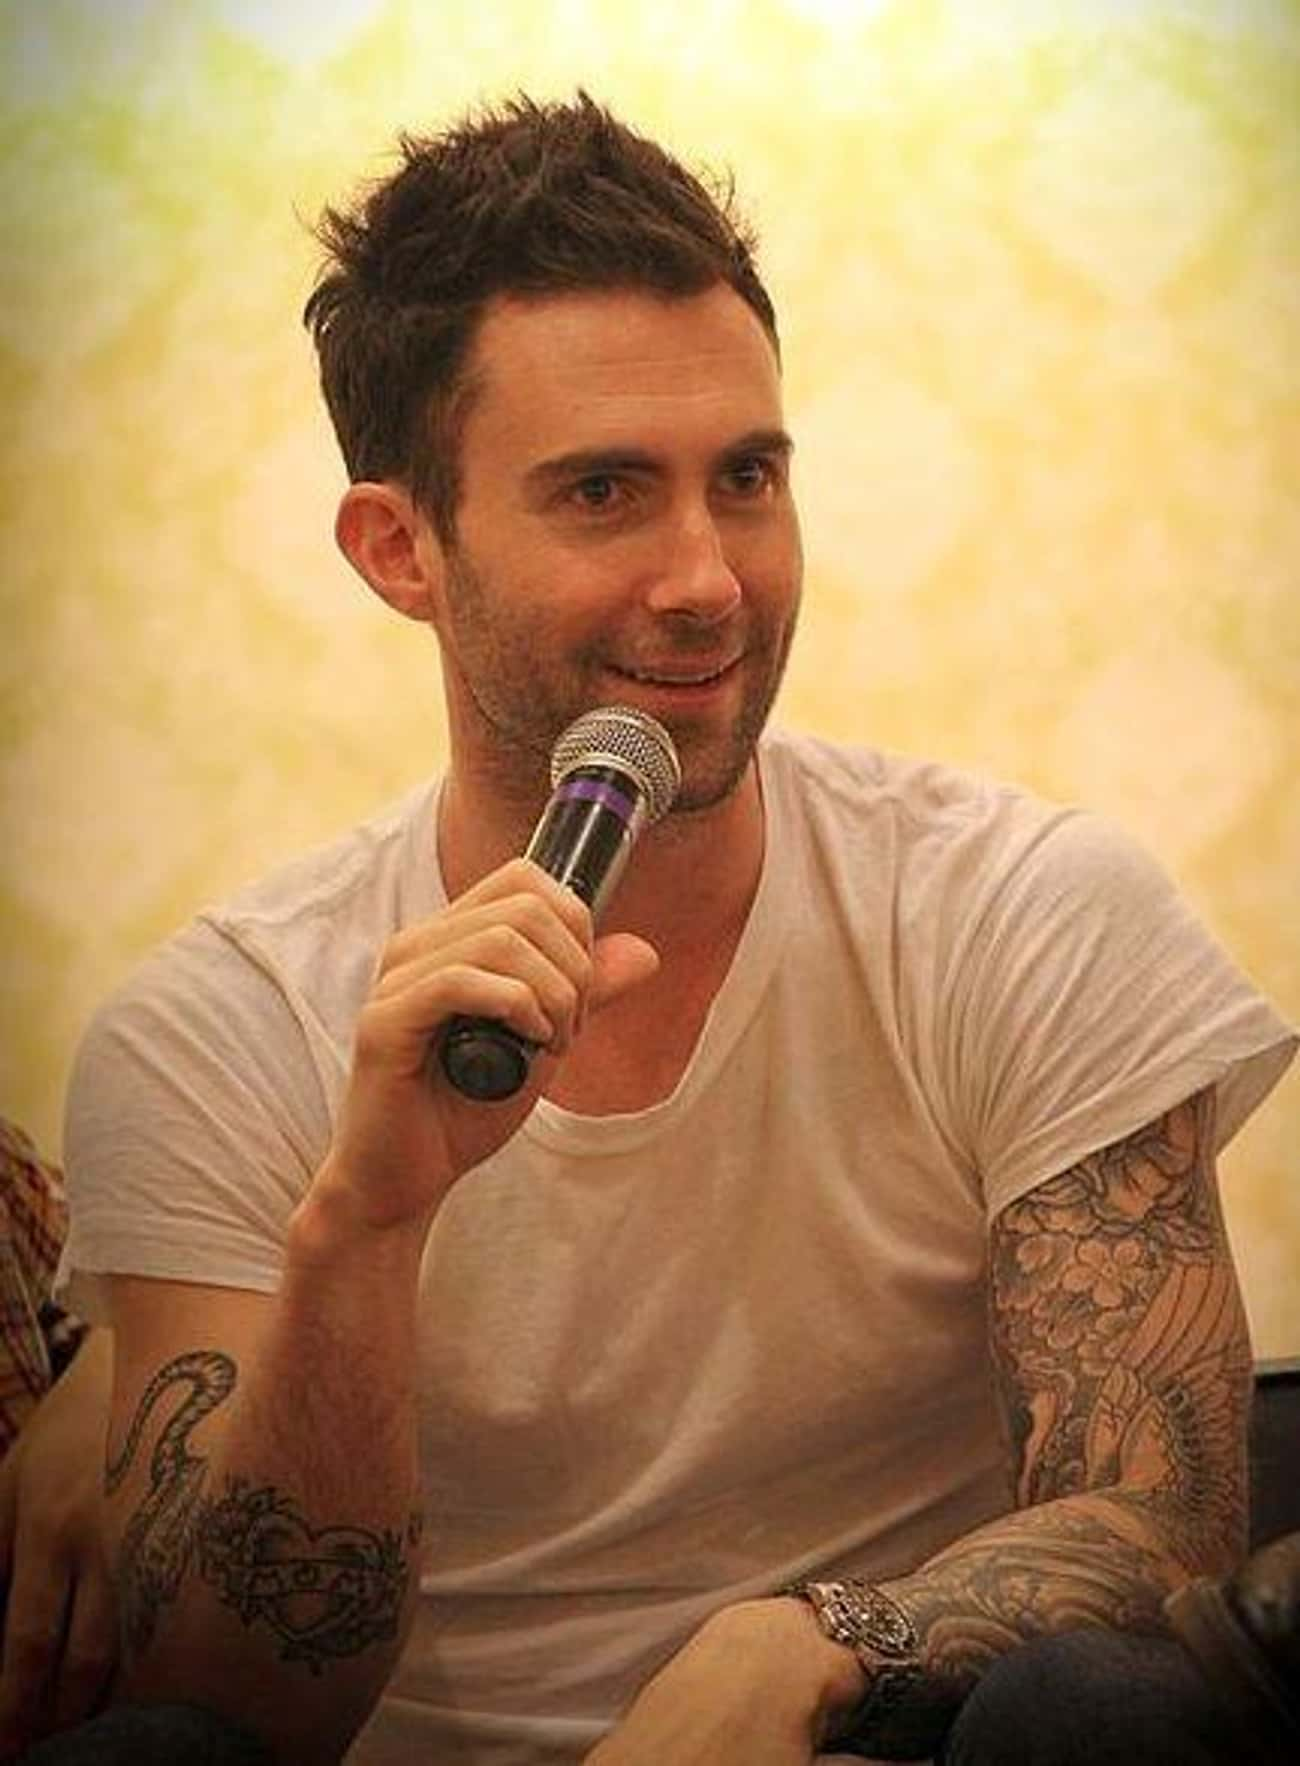 Adam Levine Advertised For The is listed (or ranked) 2 on the list Epic Ways Celebs Have Clapped Back At Invasive Paparazzi Photos